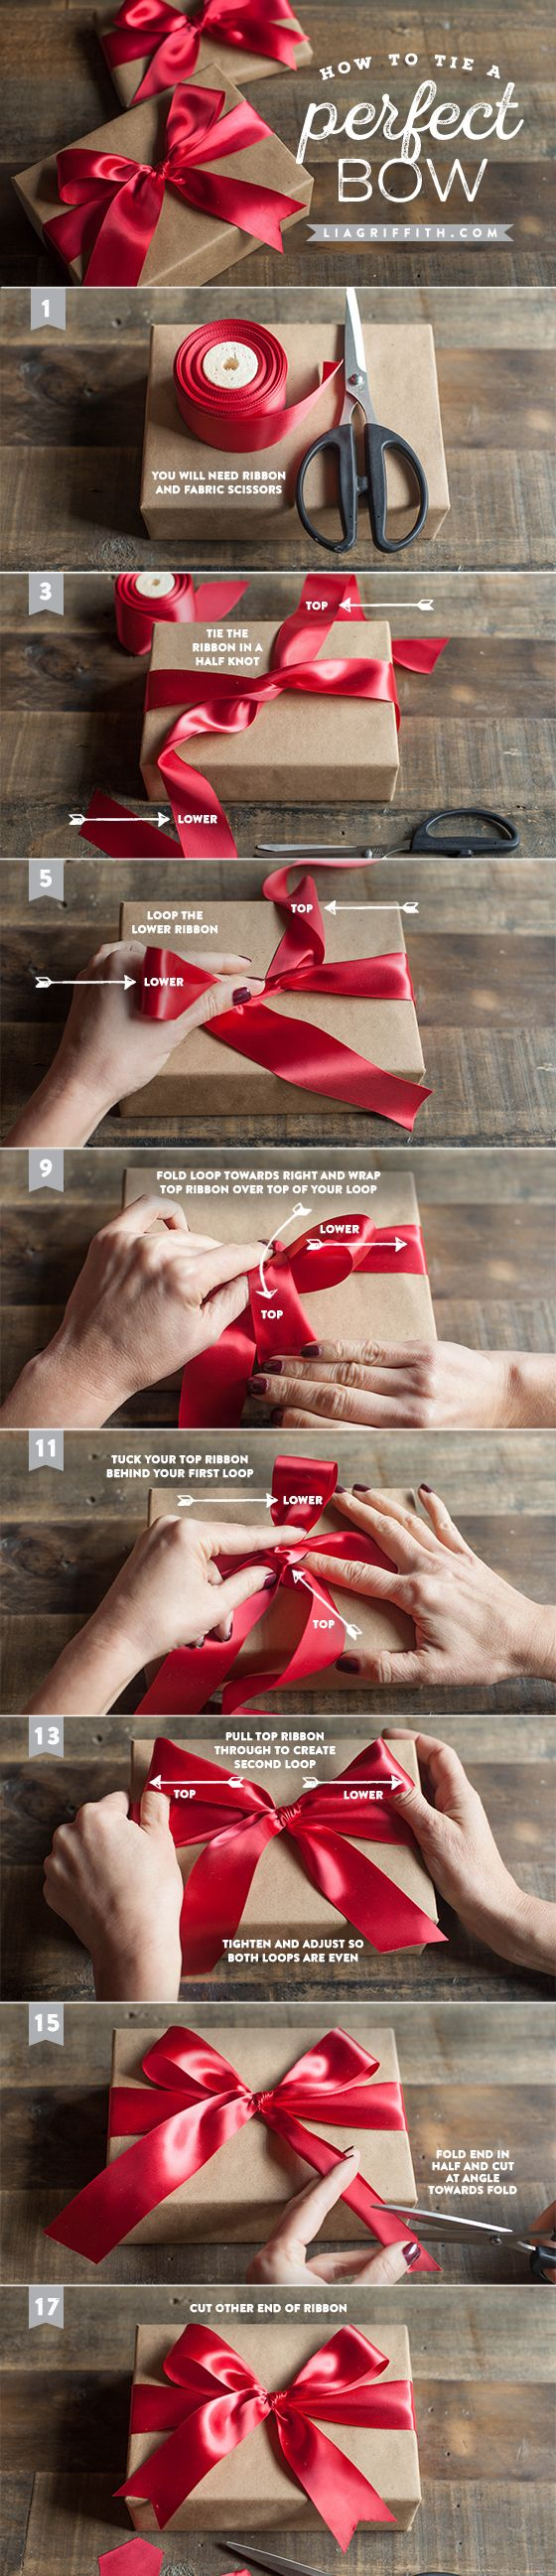 video learn how to tie the perfect bow craft diy photo tutorials pinterest gift wrapping christmas and gifts